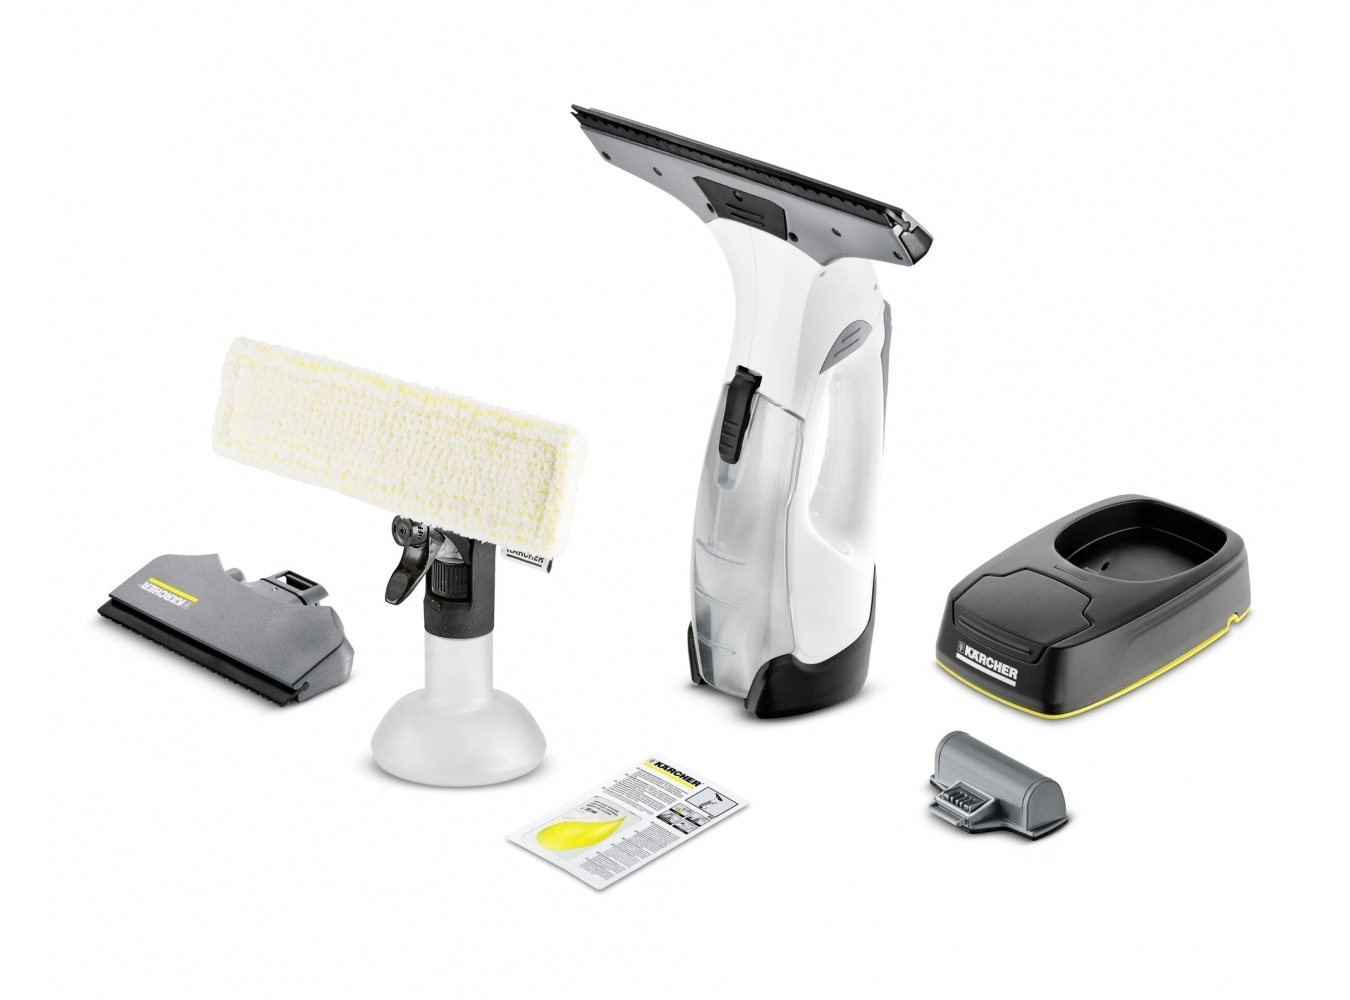 Karcher WV5 Prem. Non-Stop Cleaning Kit Fenstersauger 2xAkku für 119,99 Euro